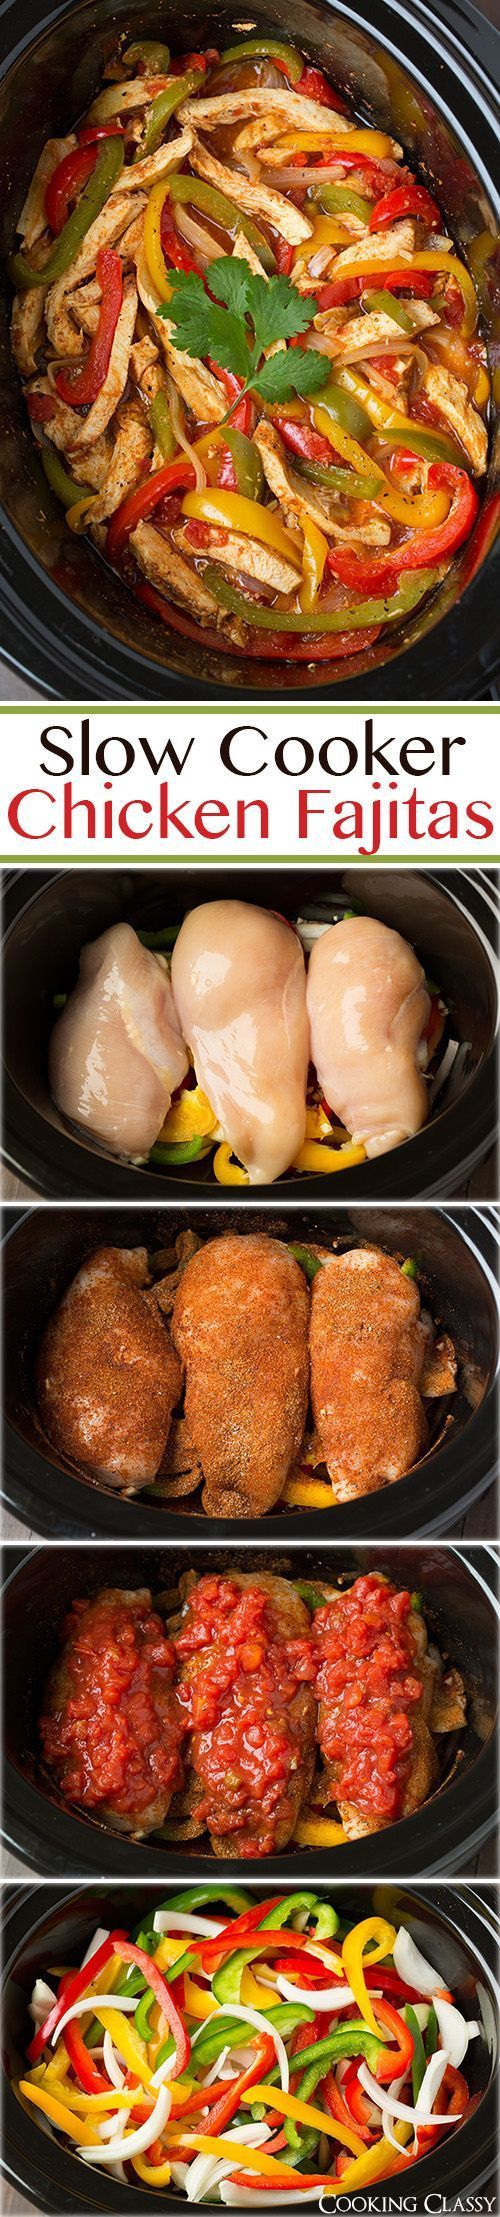 Clean Eating Slow Cooker Chicken Fajitas Recipe plus 28 more of the most pinned crock pot recipes.